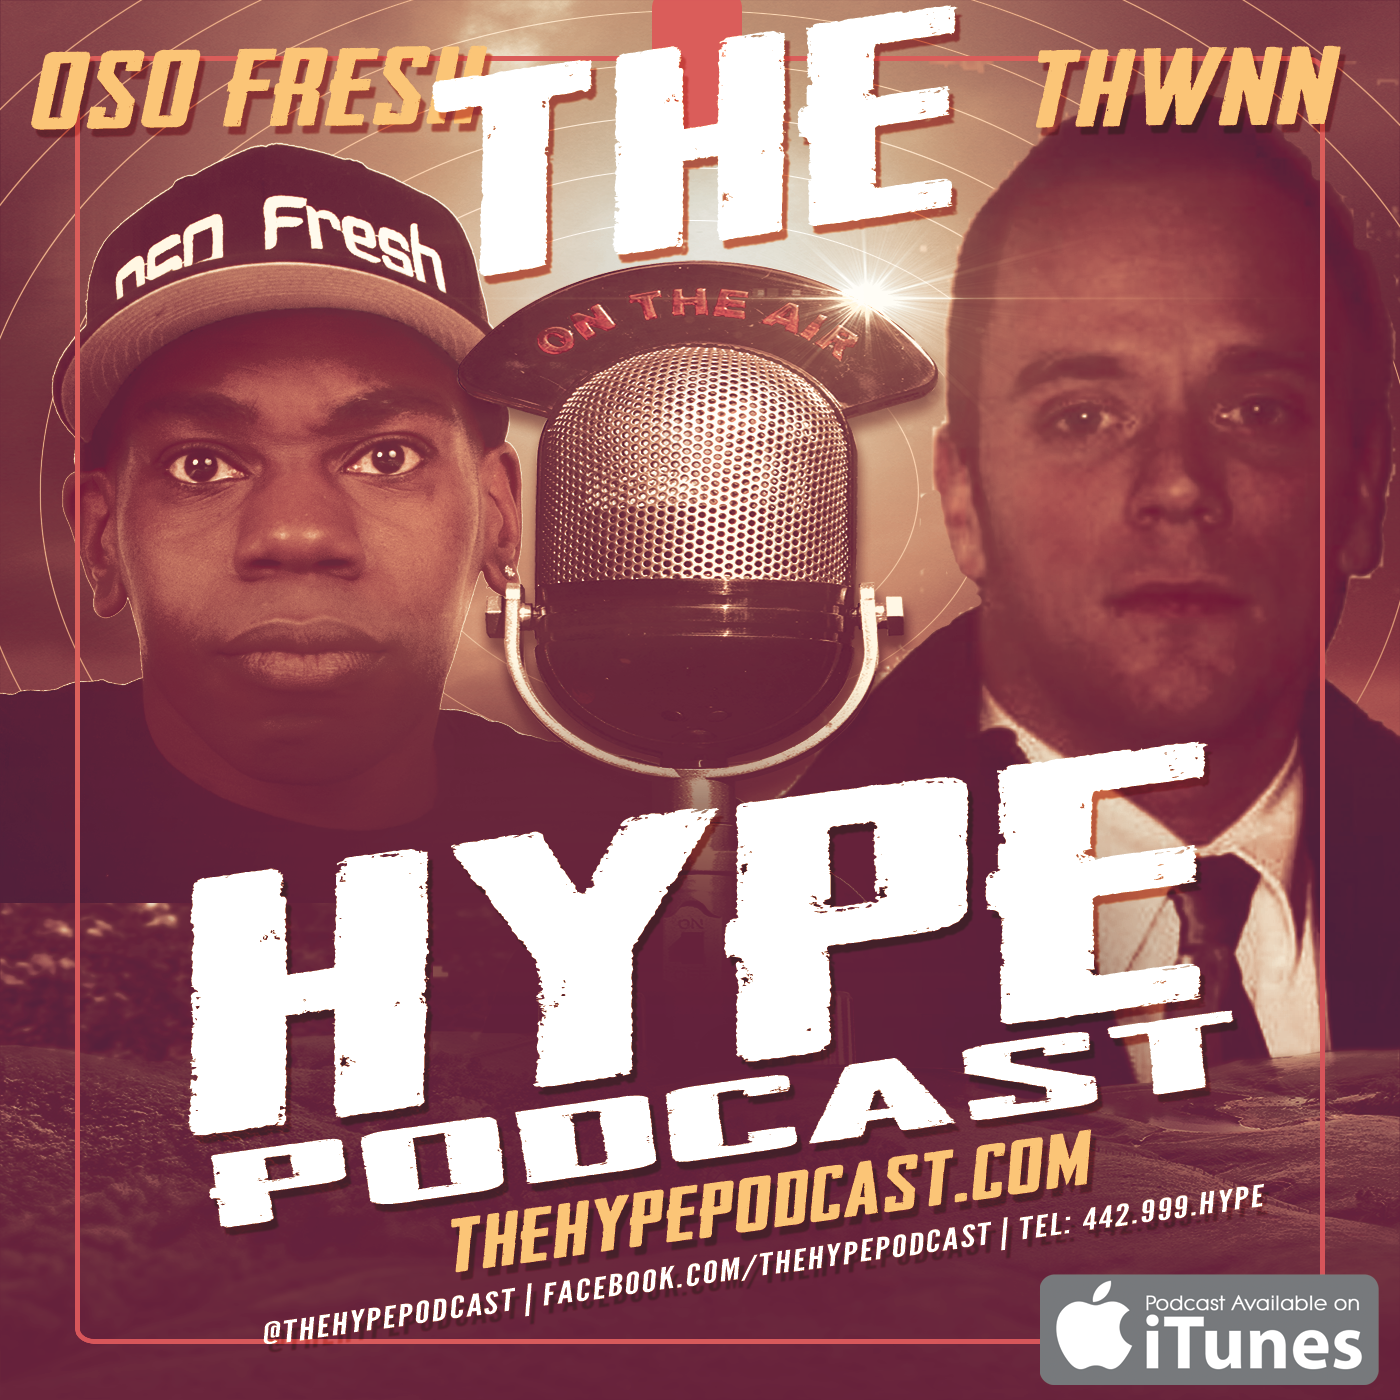 Artwork for hype podcast EPISODE 172 Going in dry